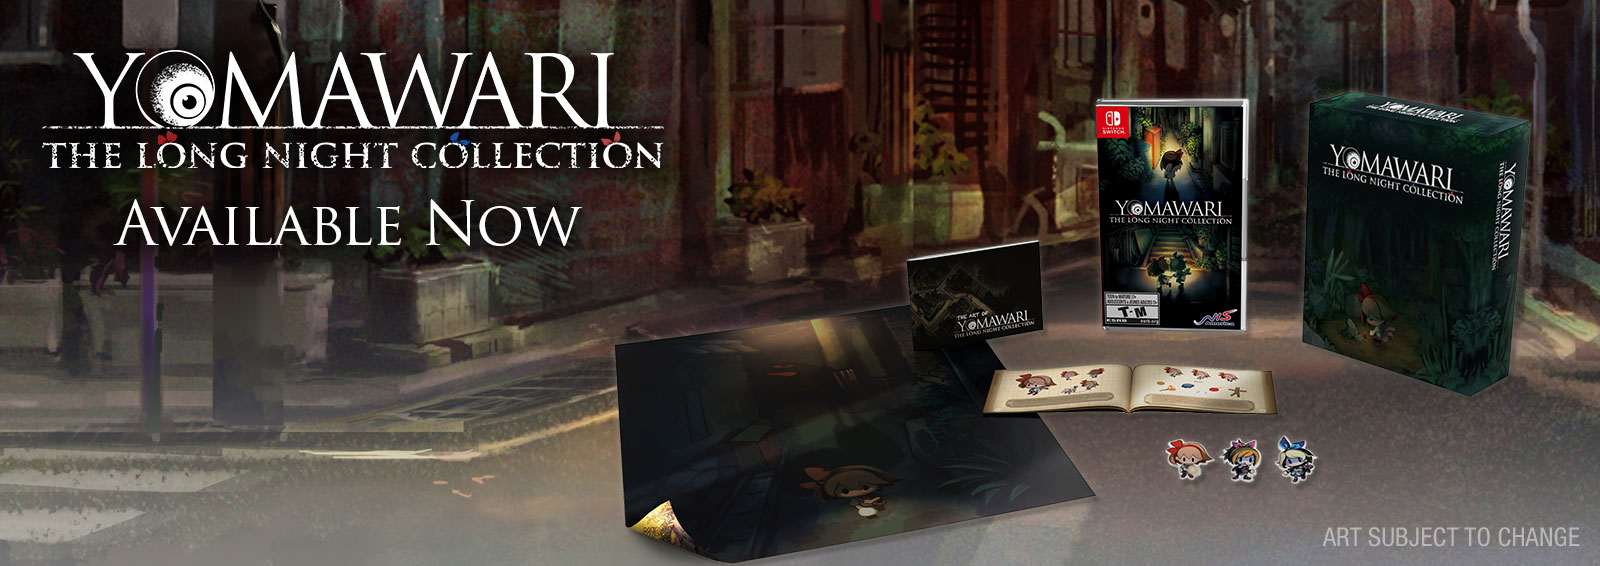 Yomawari: The Long Night Collection Limited Edition (Nintendo Switch™)